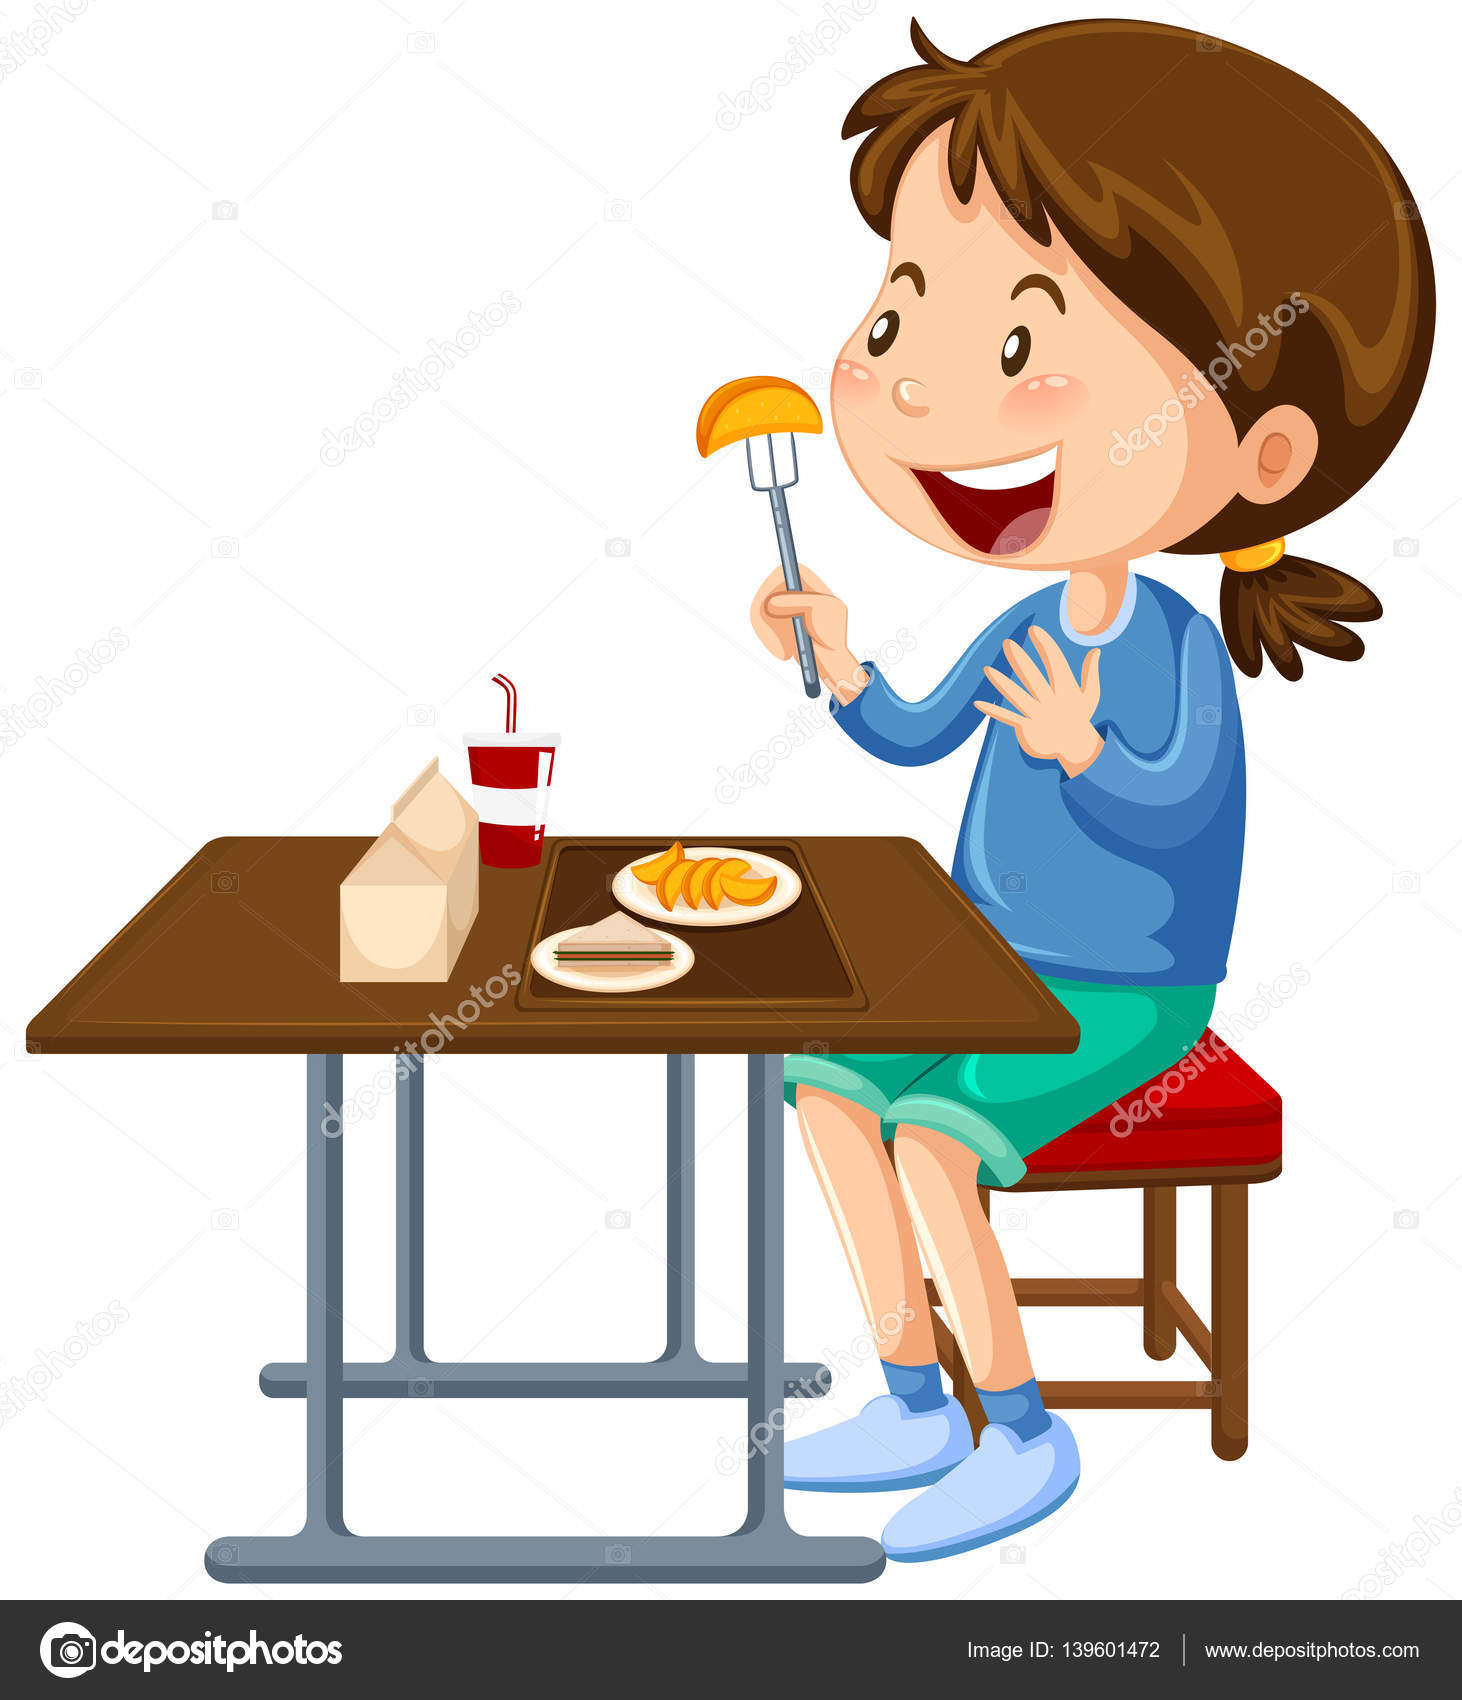 Eating Table Cartoon: Girl Eating At The Canteen Dining Table